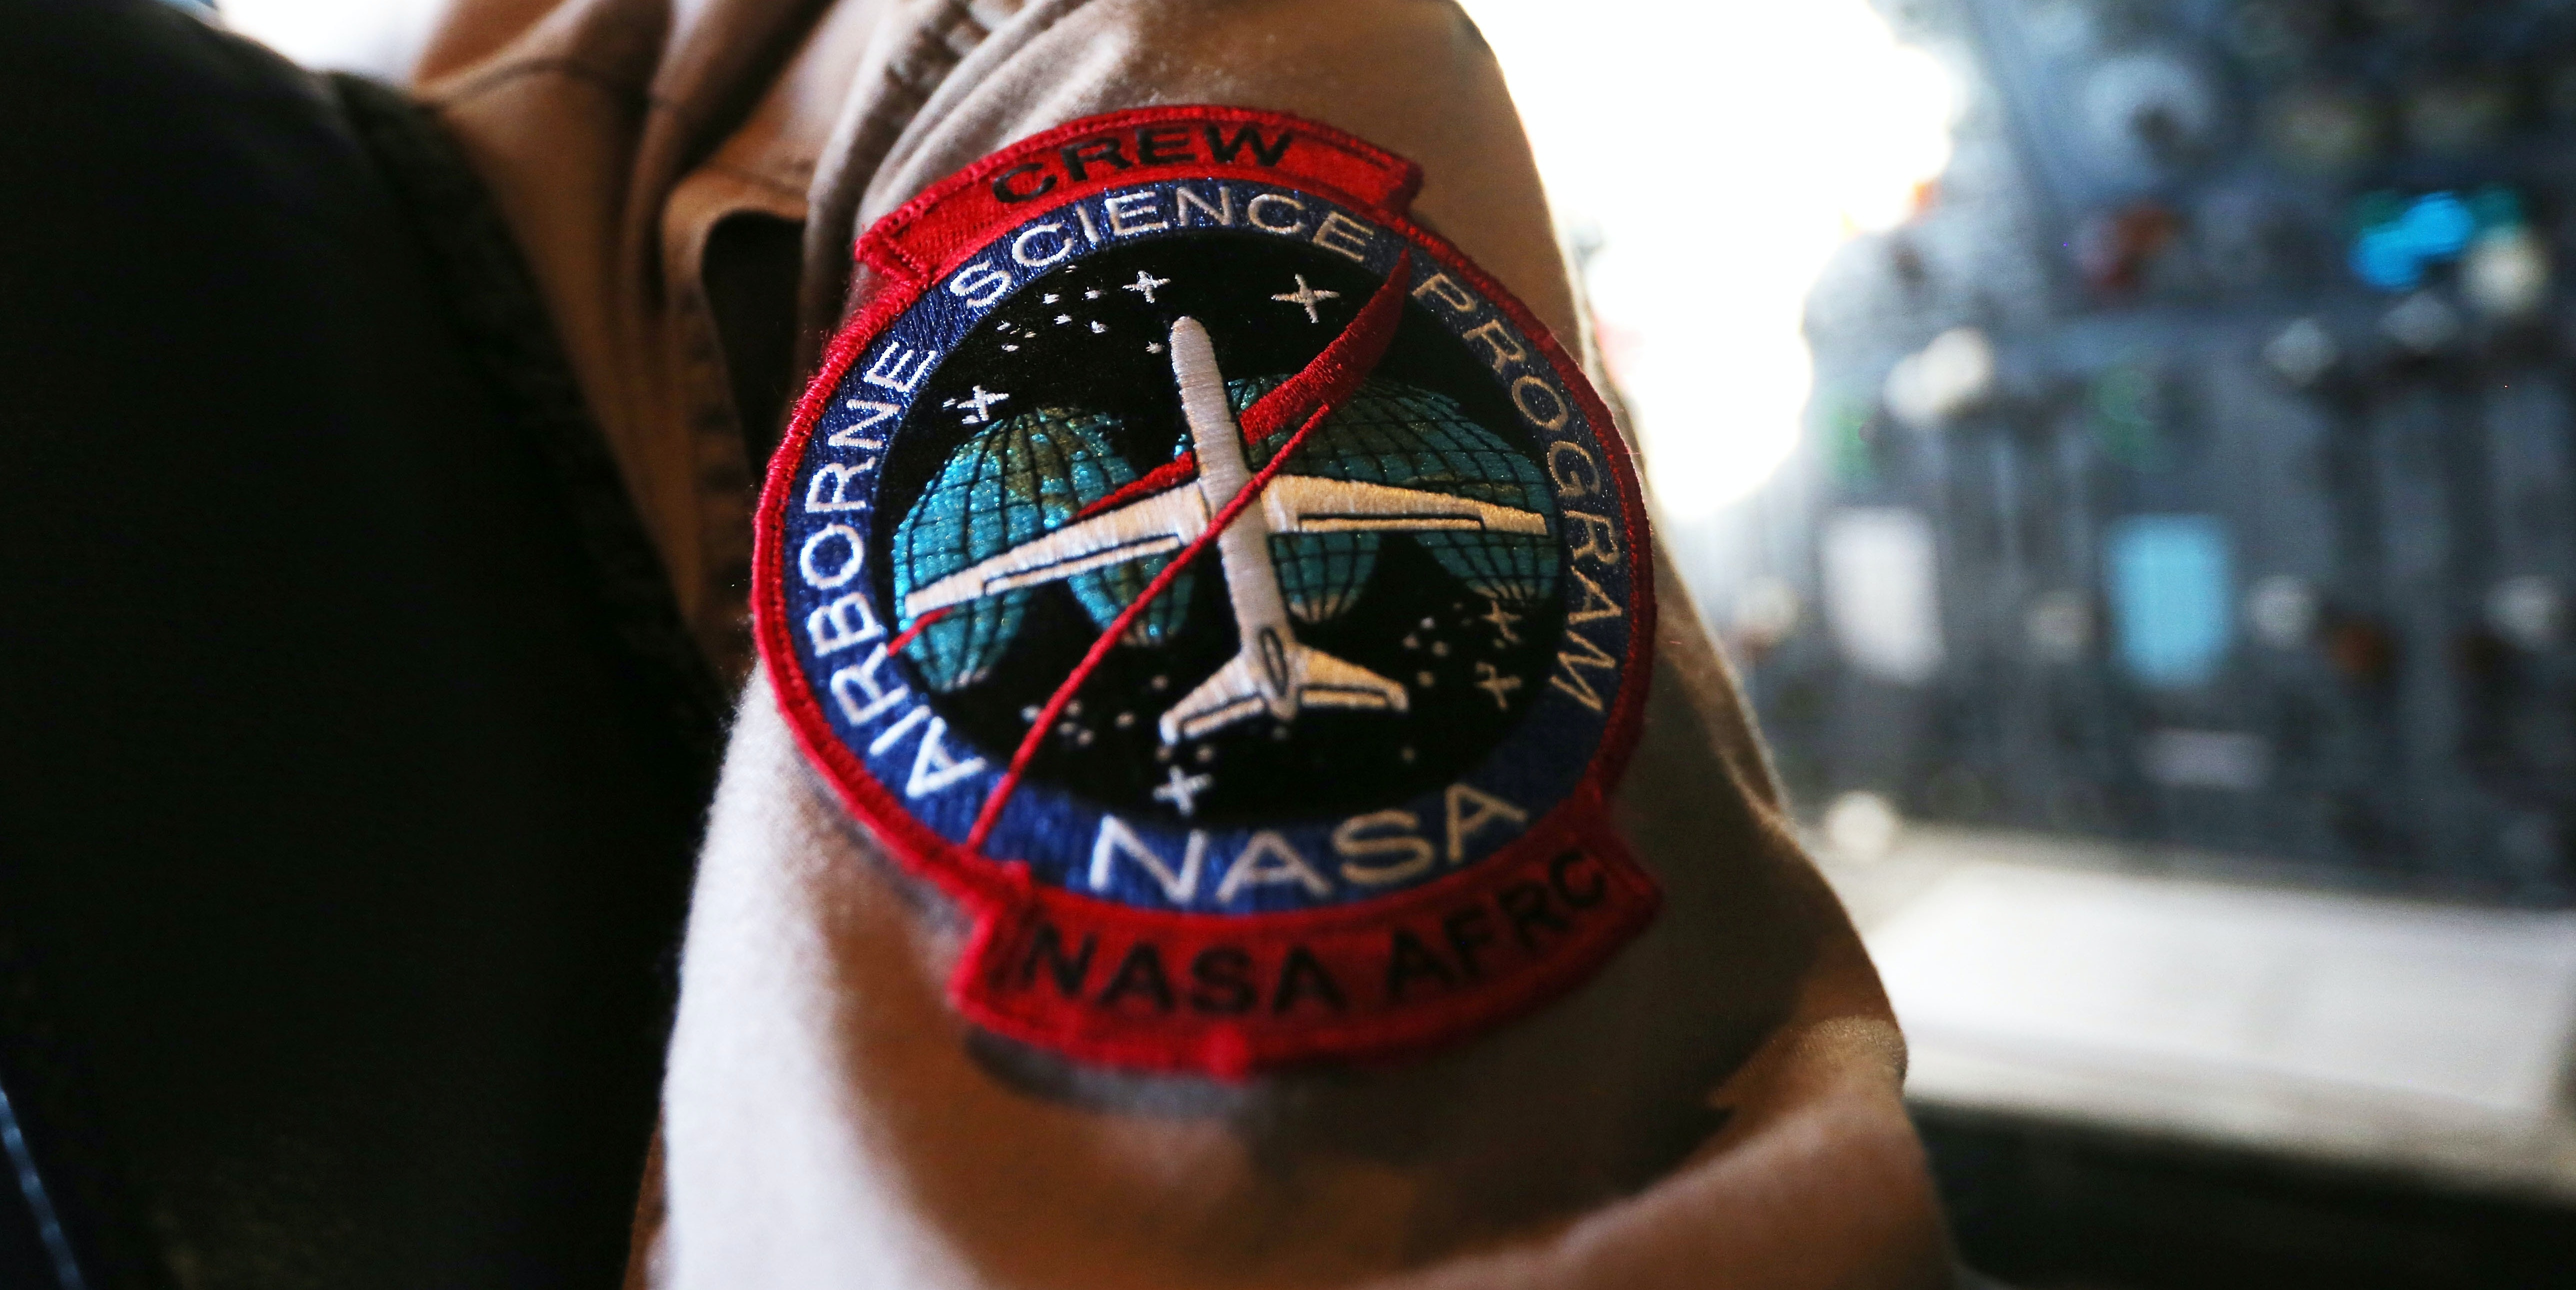 A NASA flight crew member works on Operation IceBridge, a study of polar ice. Mike Pence doesn't believe in climate change.